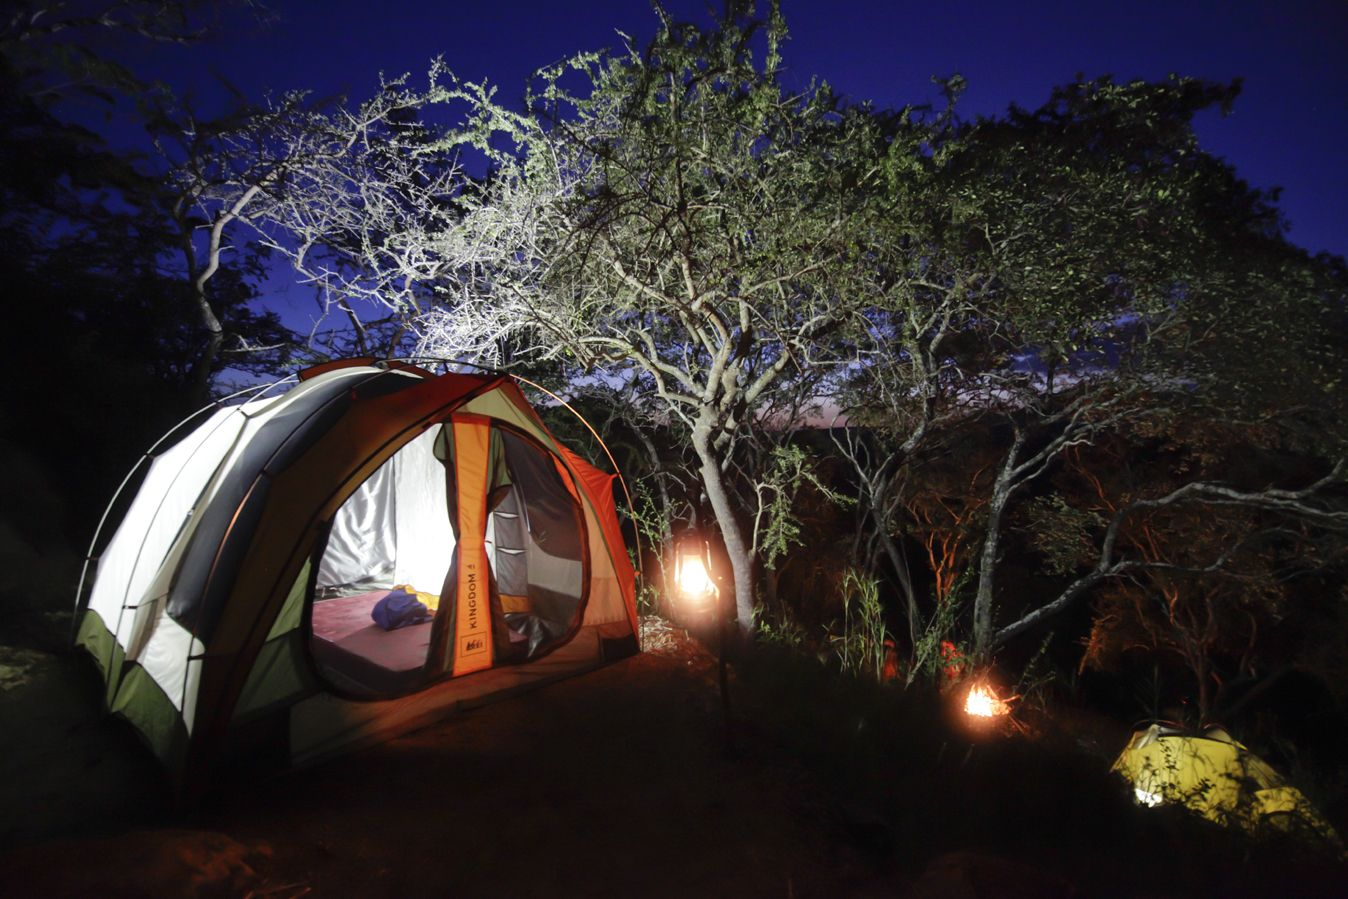 The Oldonyo Nape community campsite is one of APW's sustainable enterprise programs.